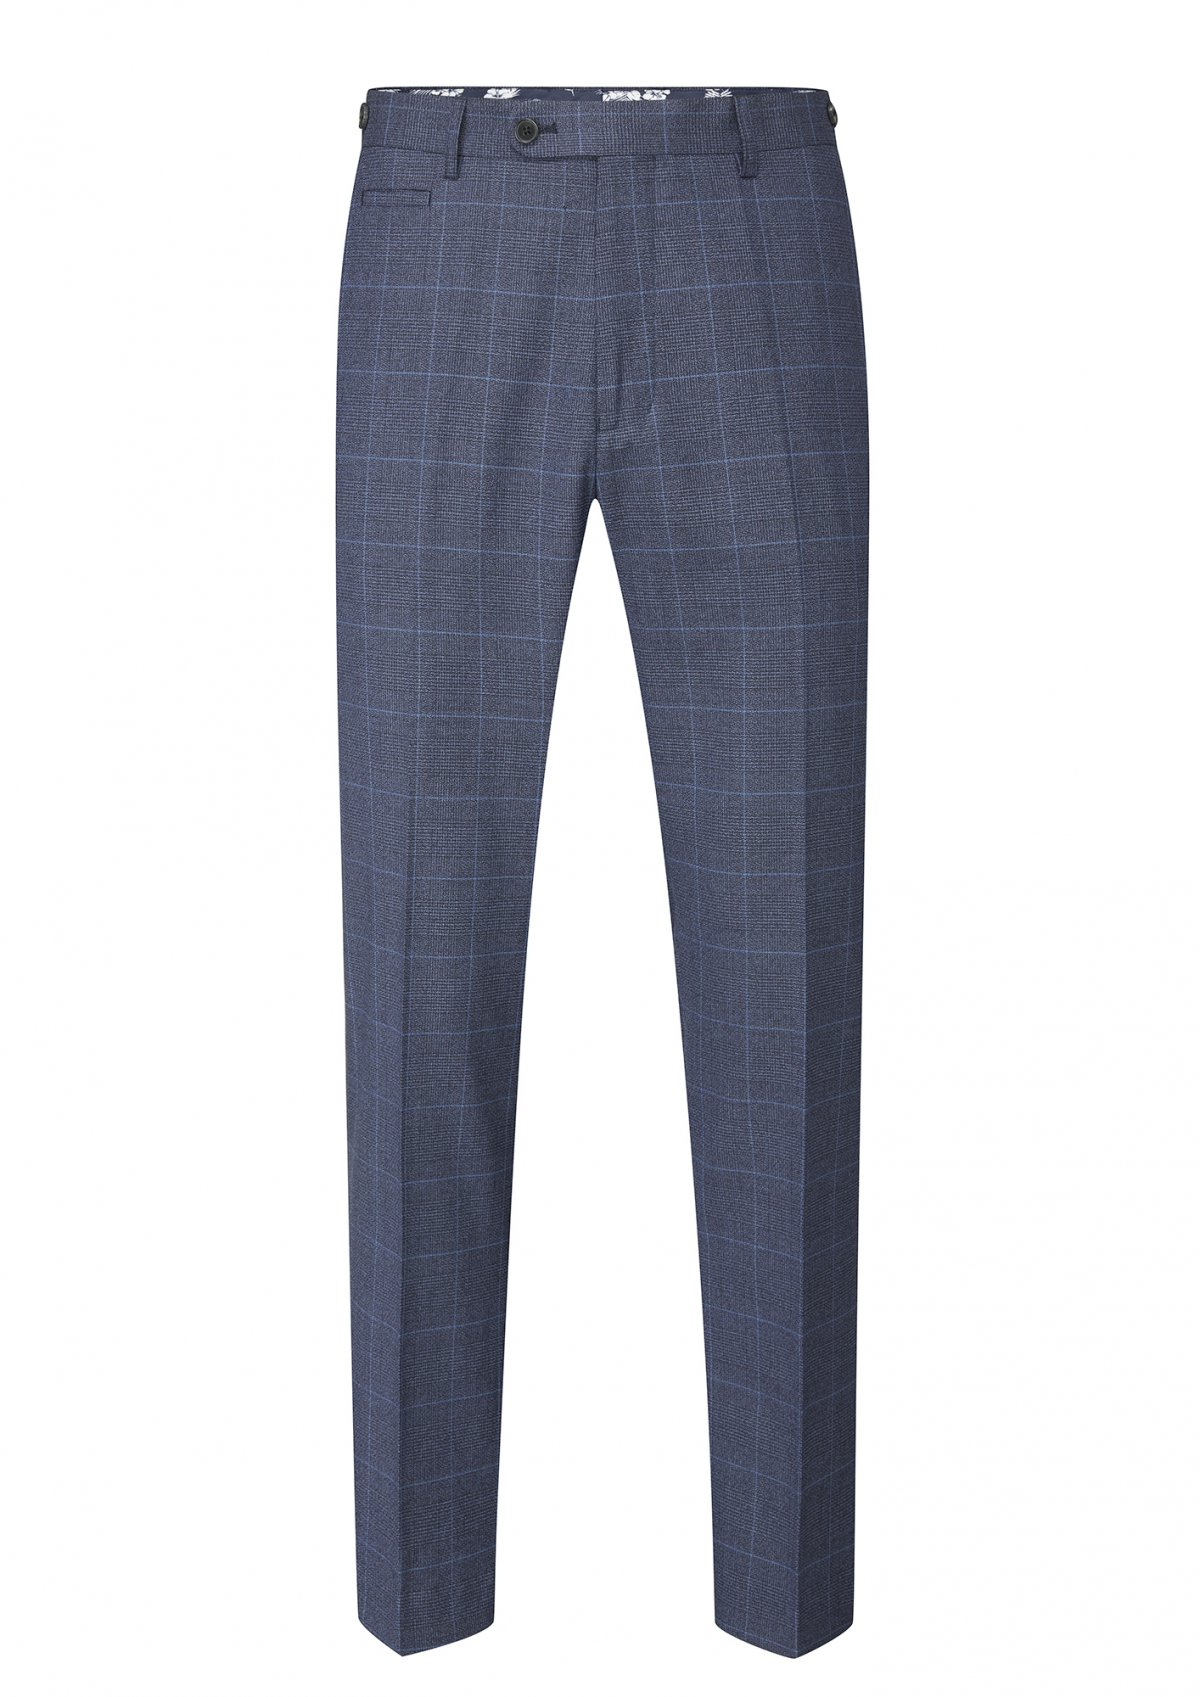 Anello Tailored fit Stretch Trouser